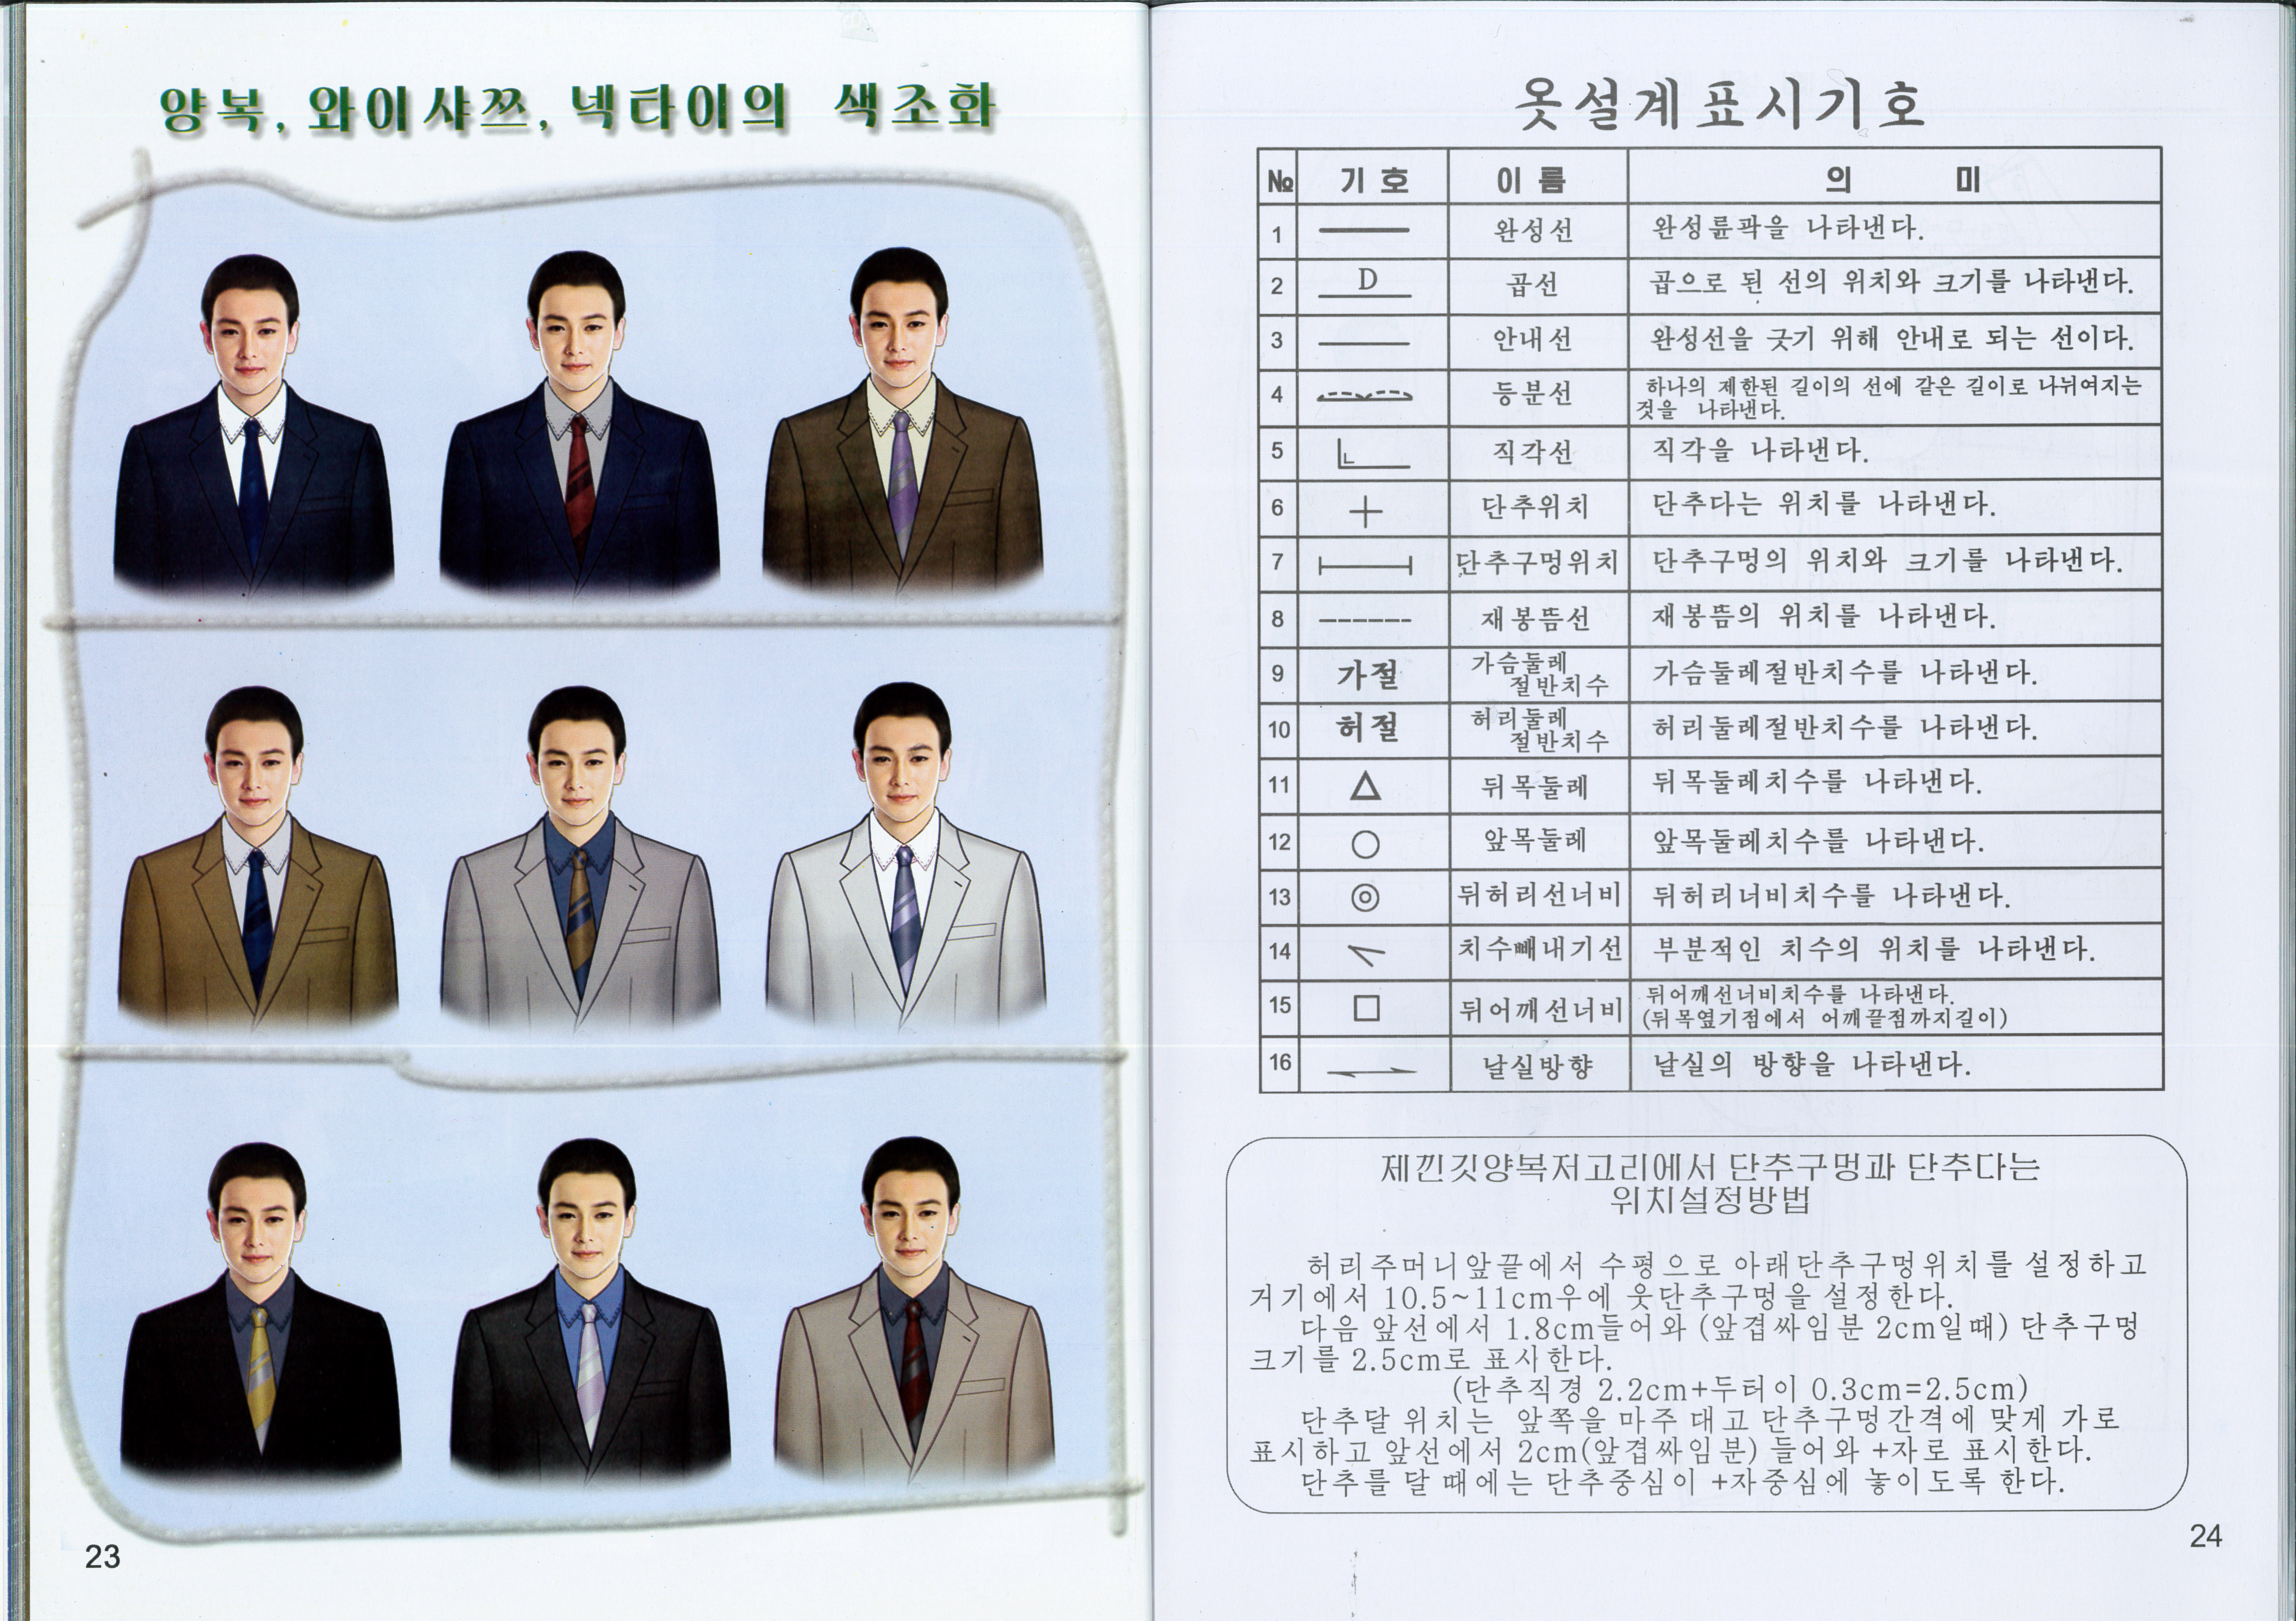 Fix up, look sharp: the changing face of North Korean men's